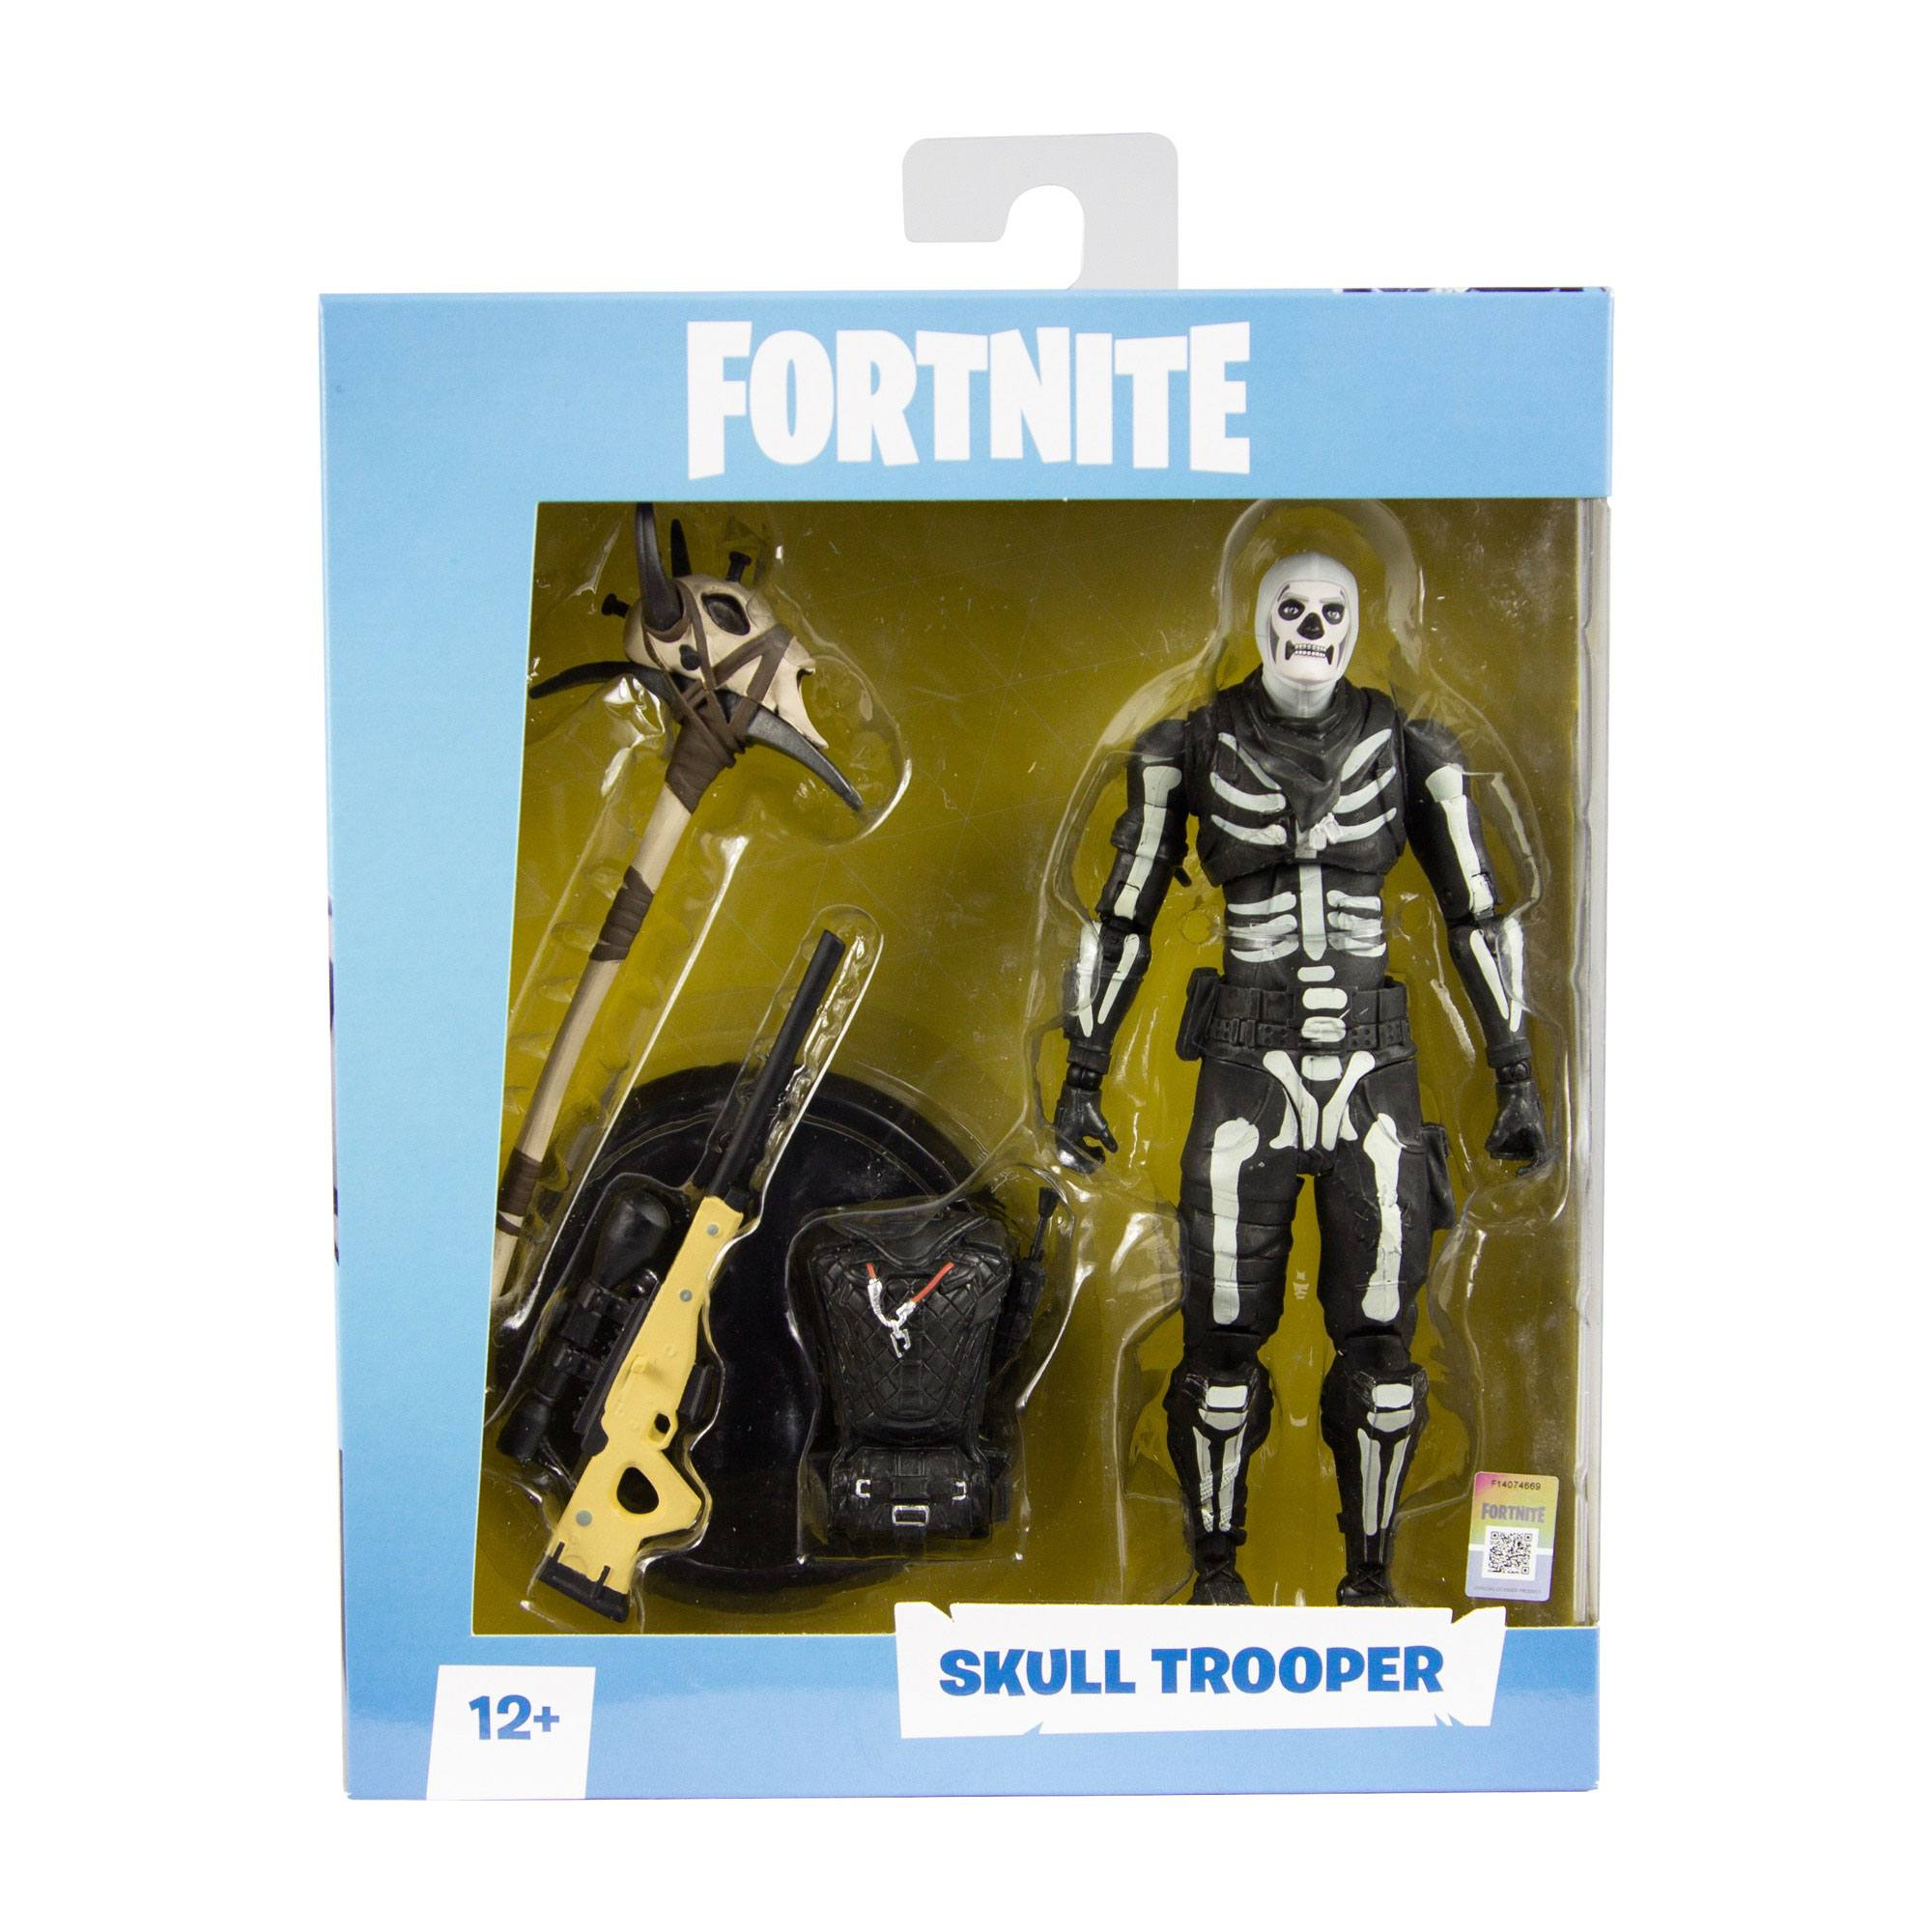 fortnite action figure skull trooper 18 cm - fortnite store uk